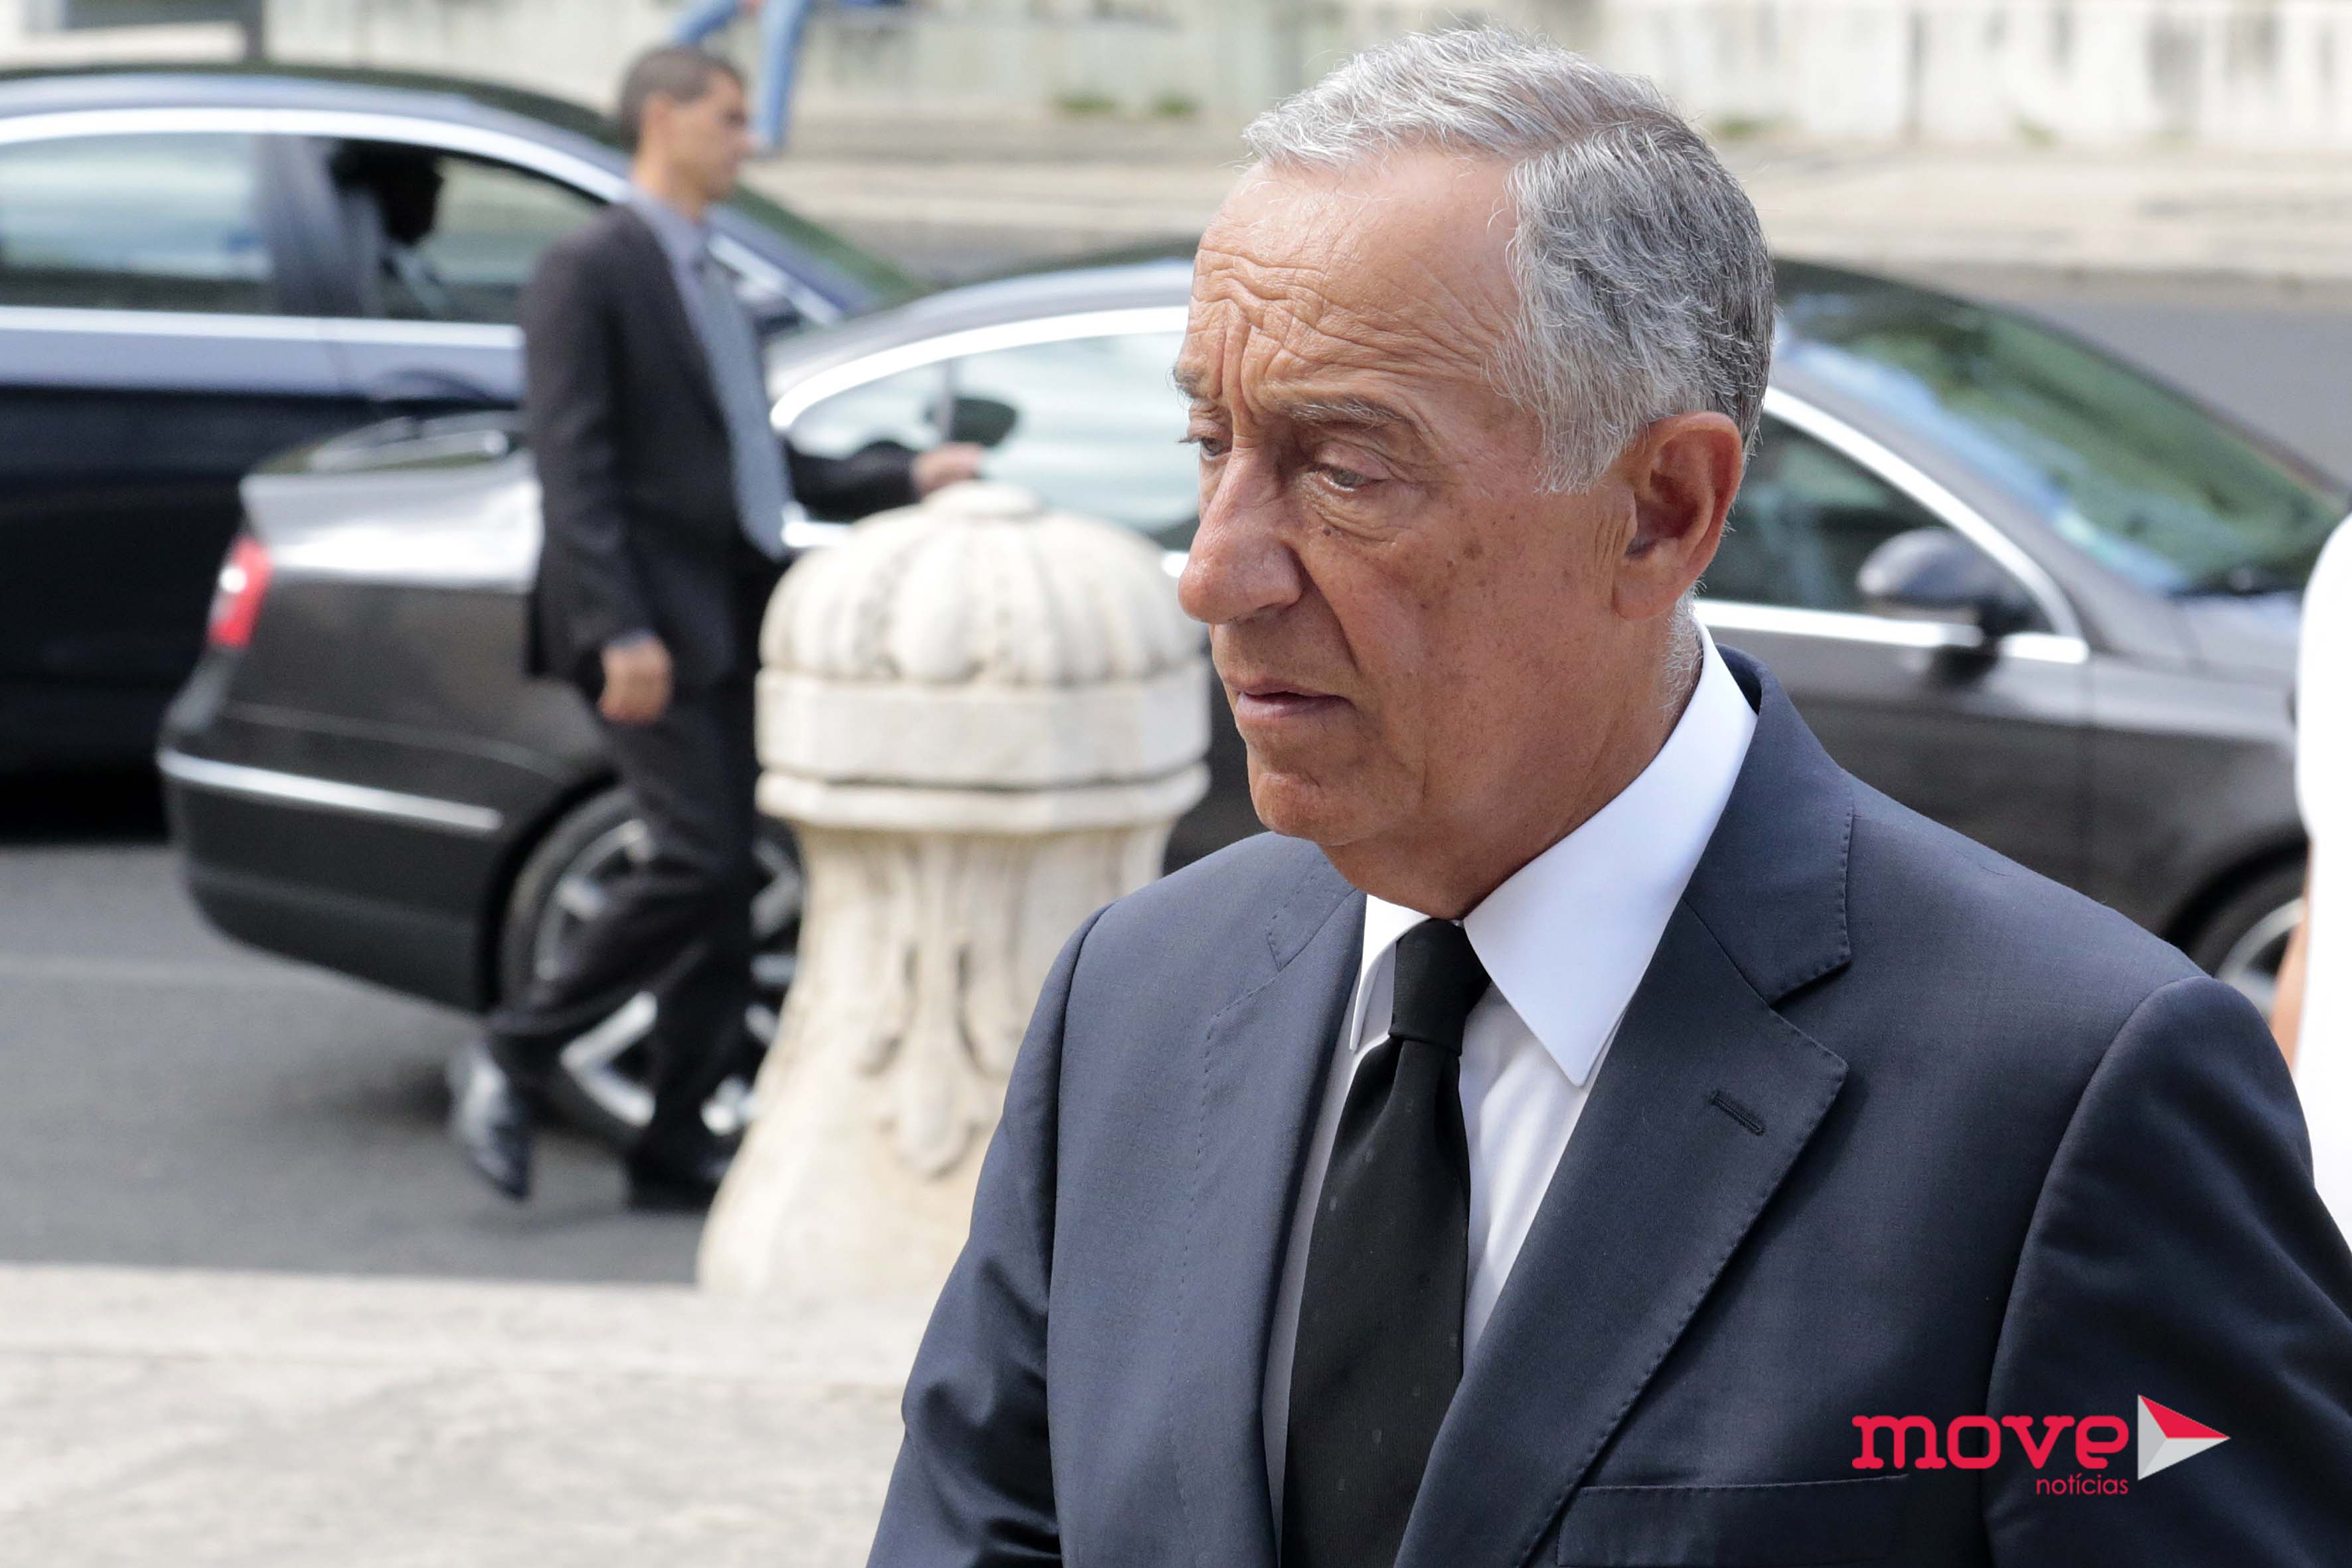 Marcelo Rebelo de Sousa visado em vídeo do Estado Islâmico